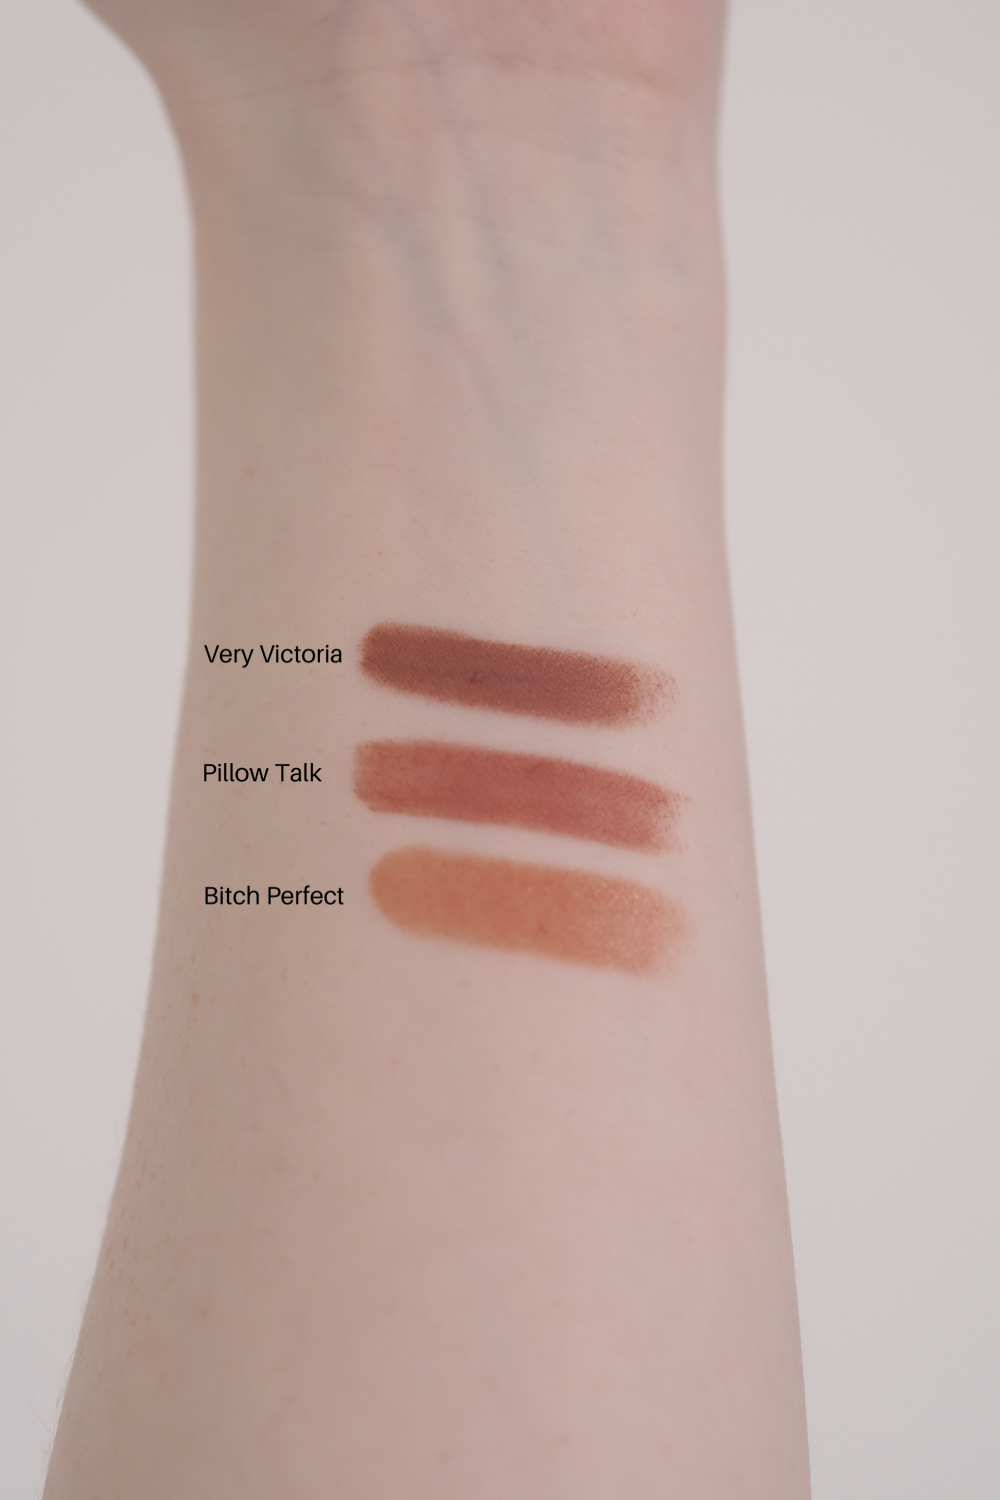 Favourite Everyday Lipsticks for Pale Skin Charlotte Tilbury Very Victoria Pillow Talk Bitch Perfect swatches